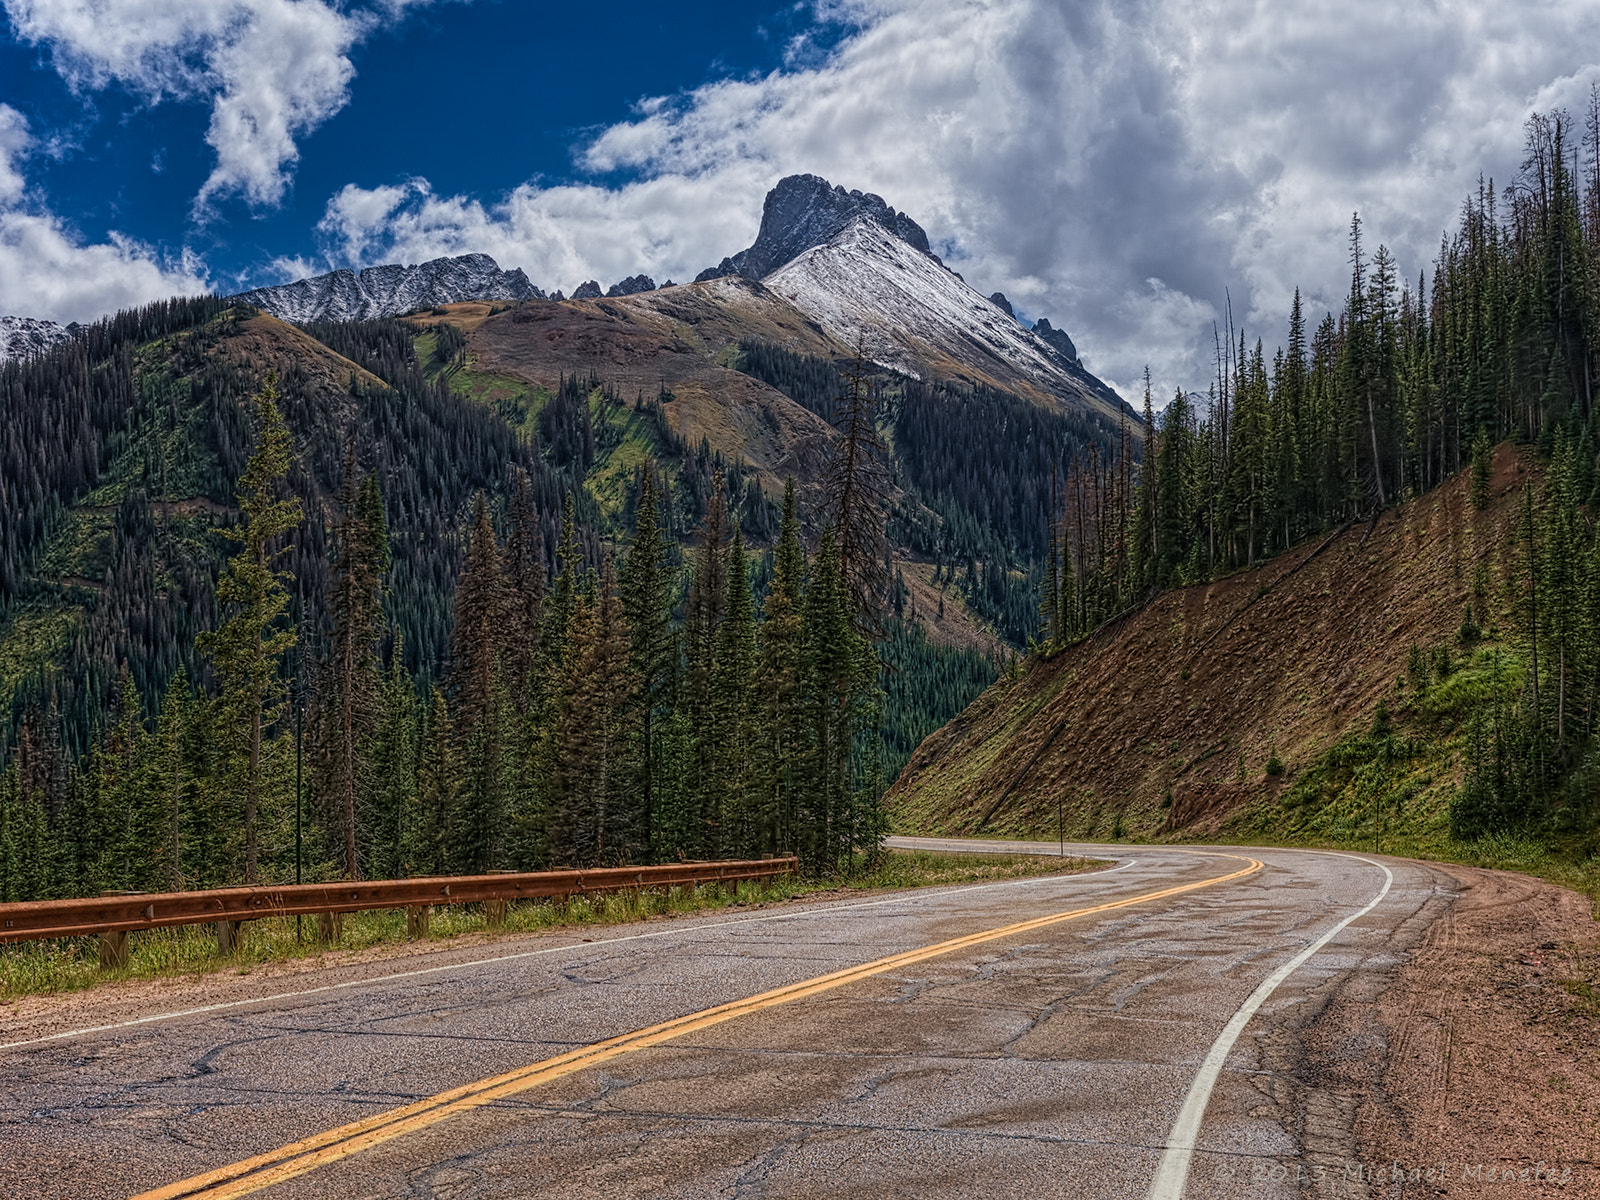 Photograph Nearing the Peak of Cameron Pass by Michael Menefee on 500px